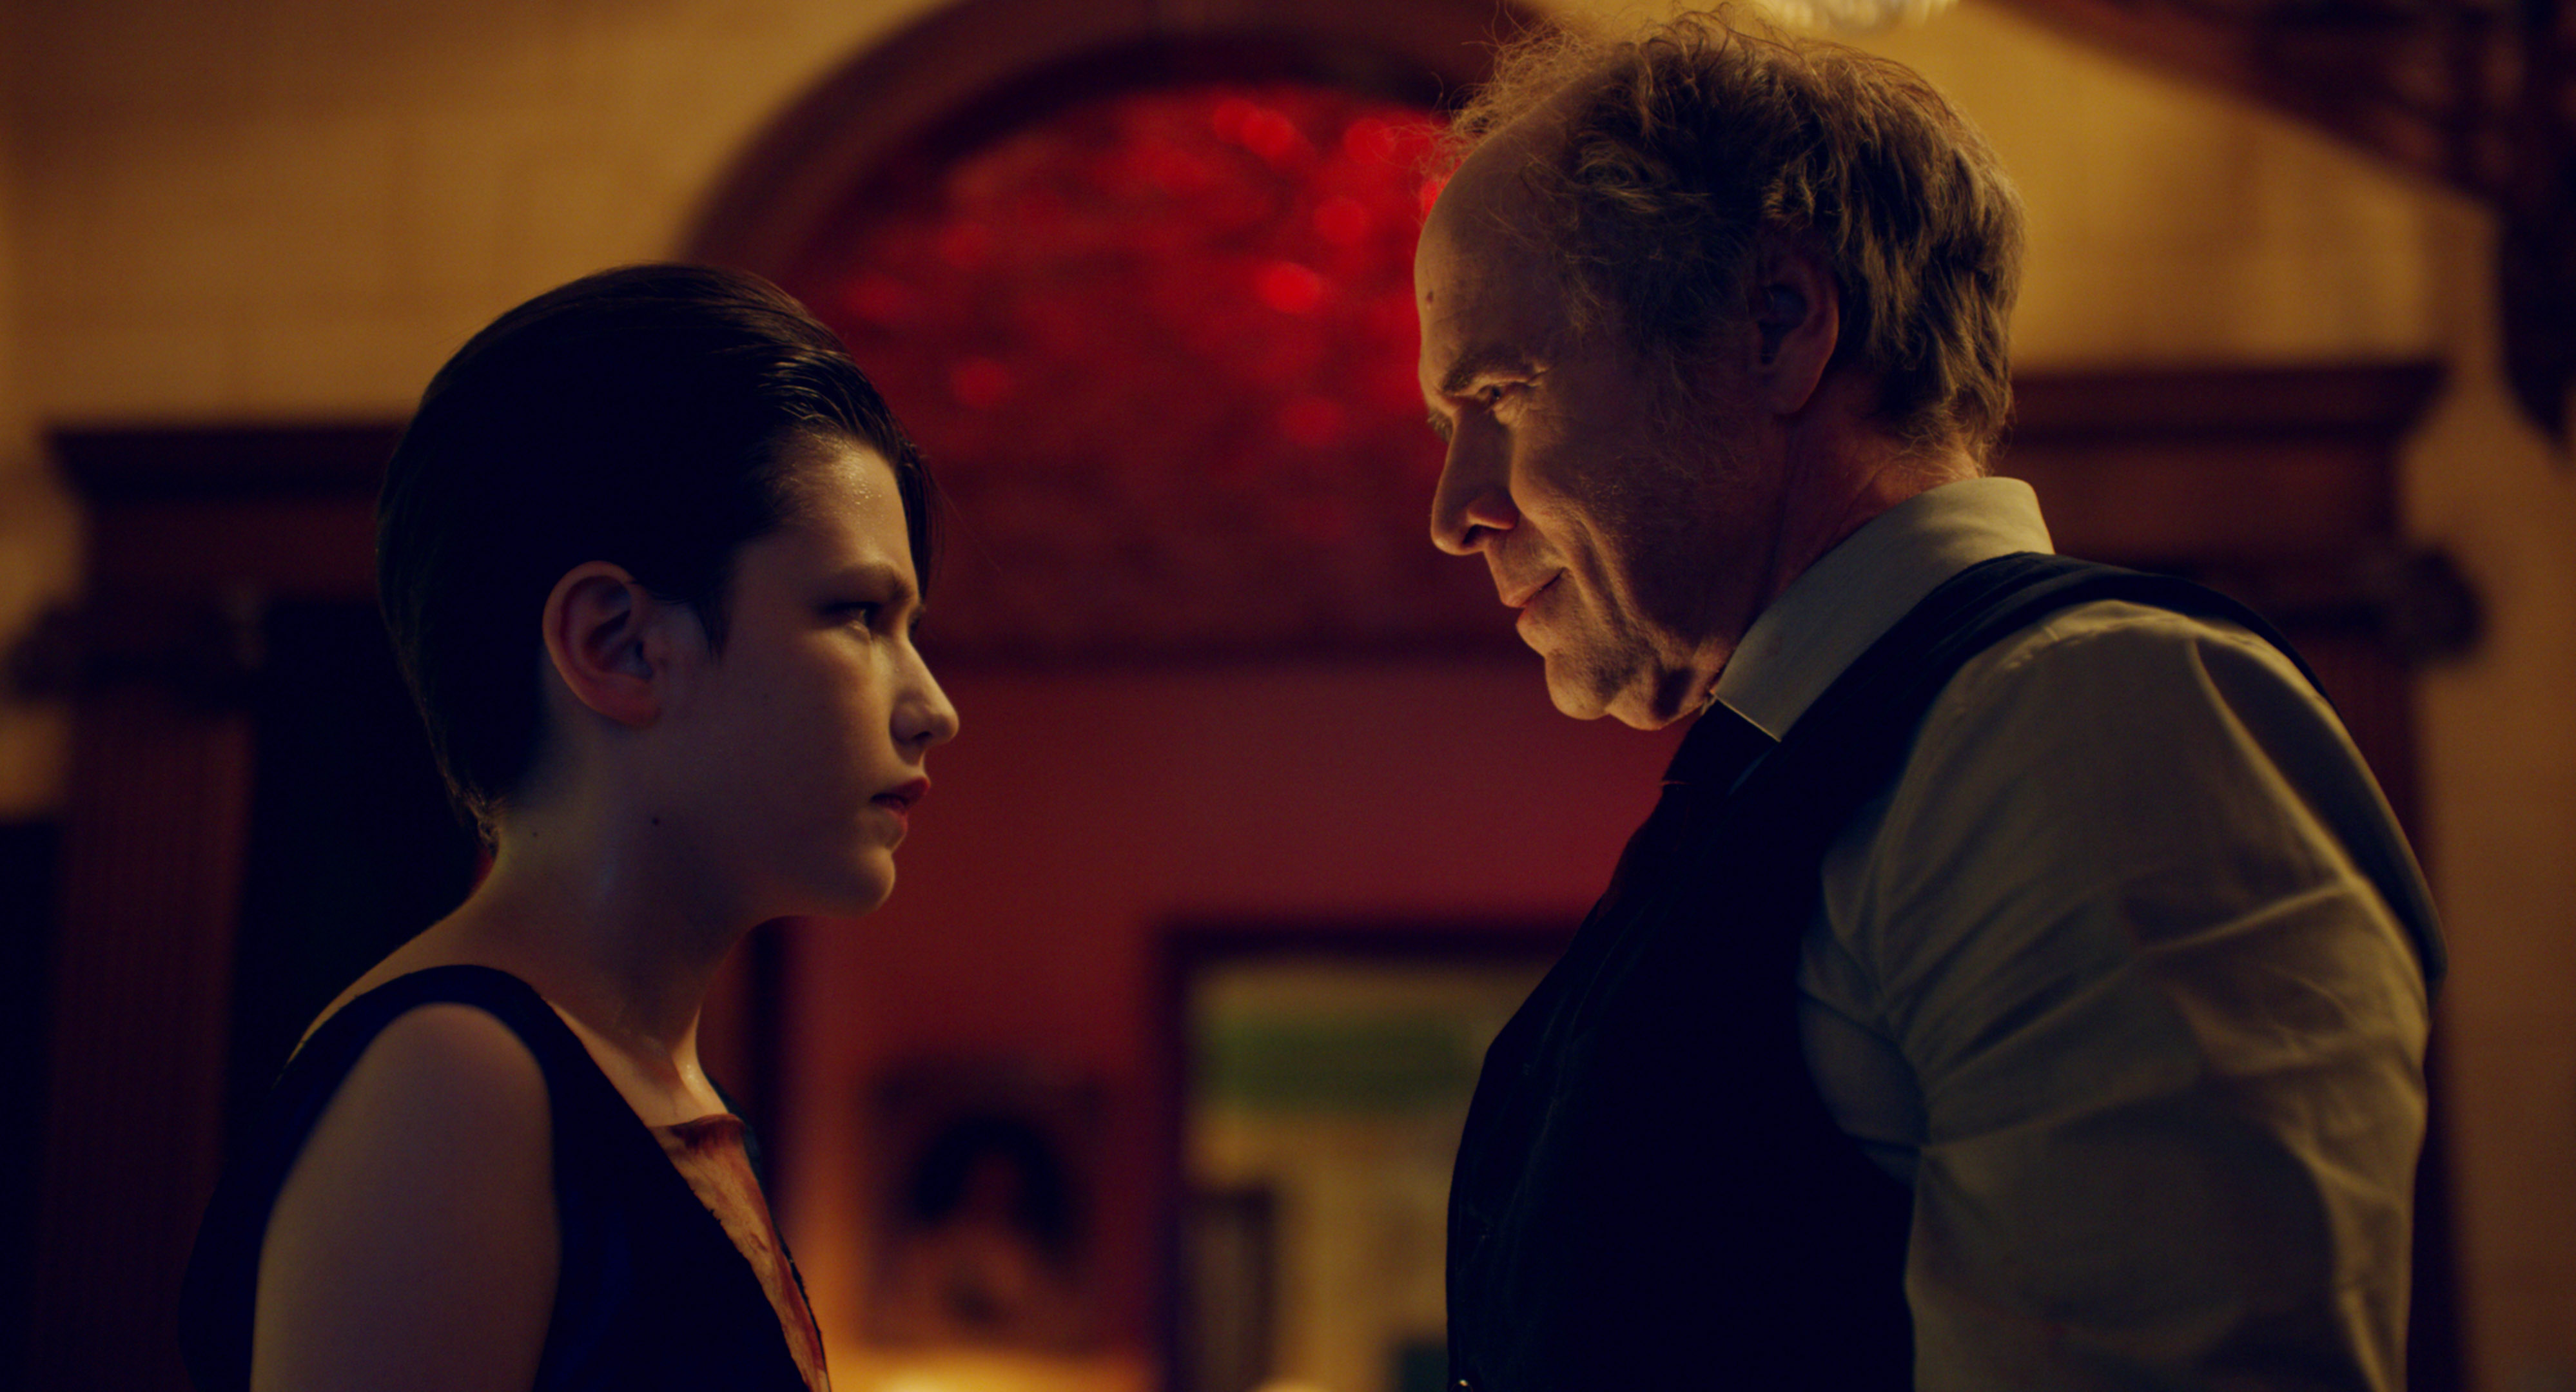 Jacob and Dr. Sherman face each other in a red-lit room.